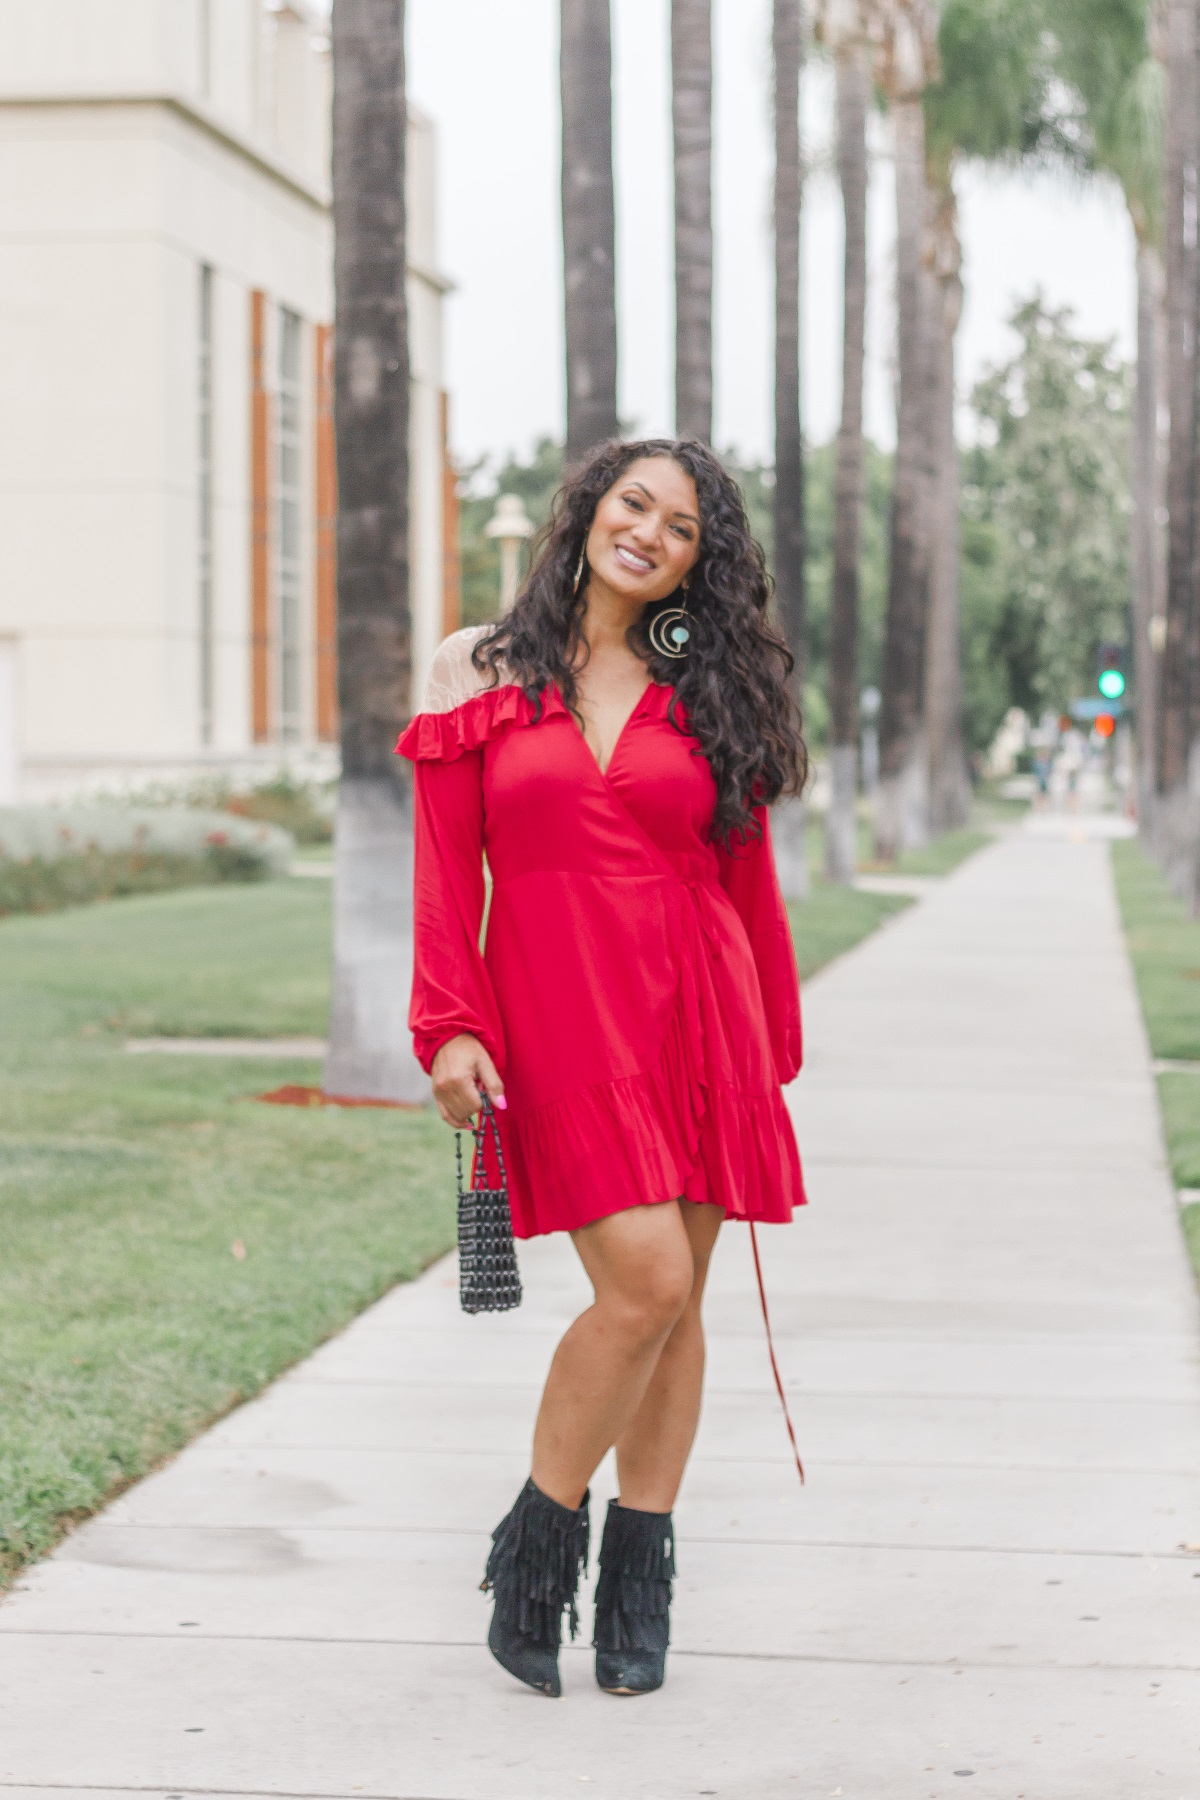 Little Red Dress | Debbie Savage Orange County Fashion Blogger at To Thine Own Style Be True